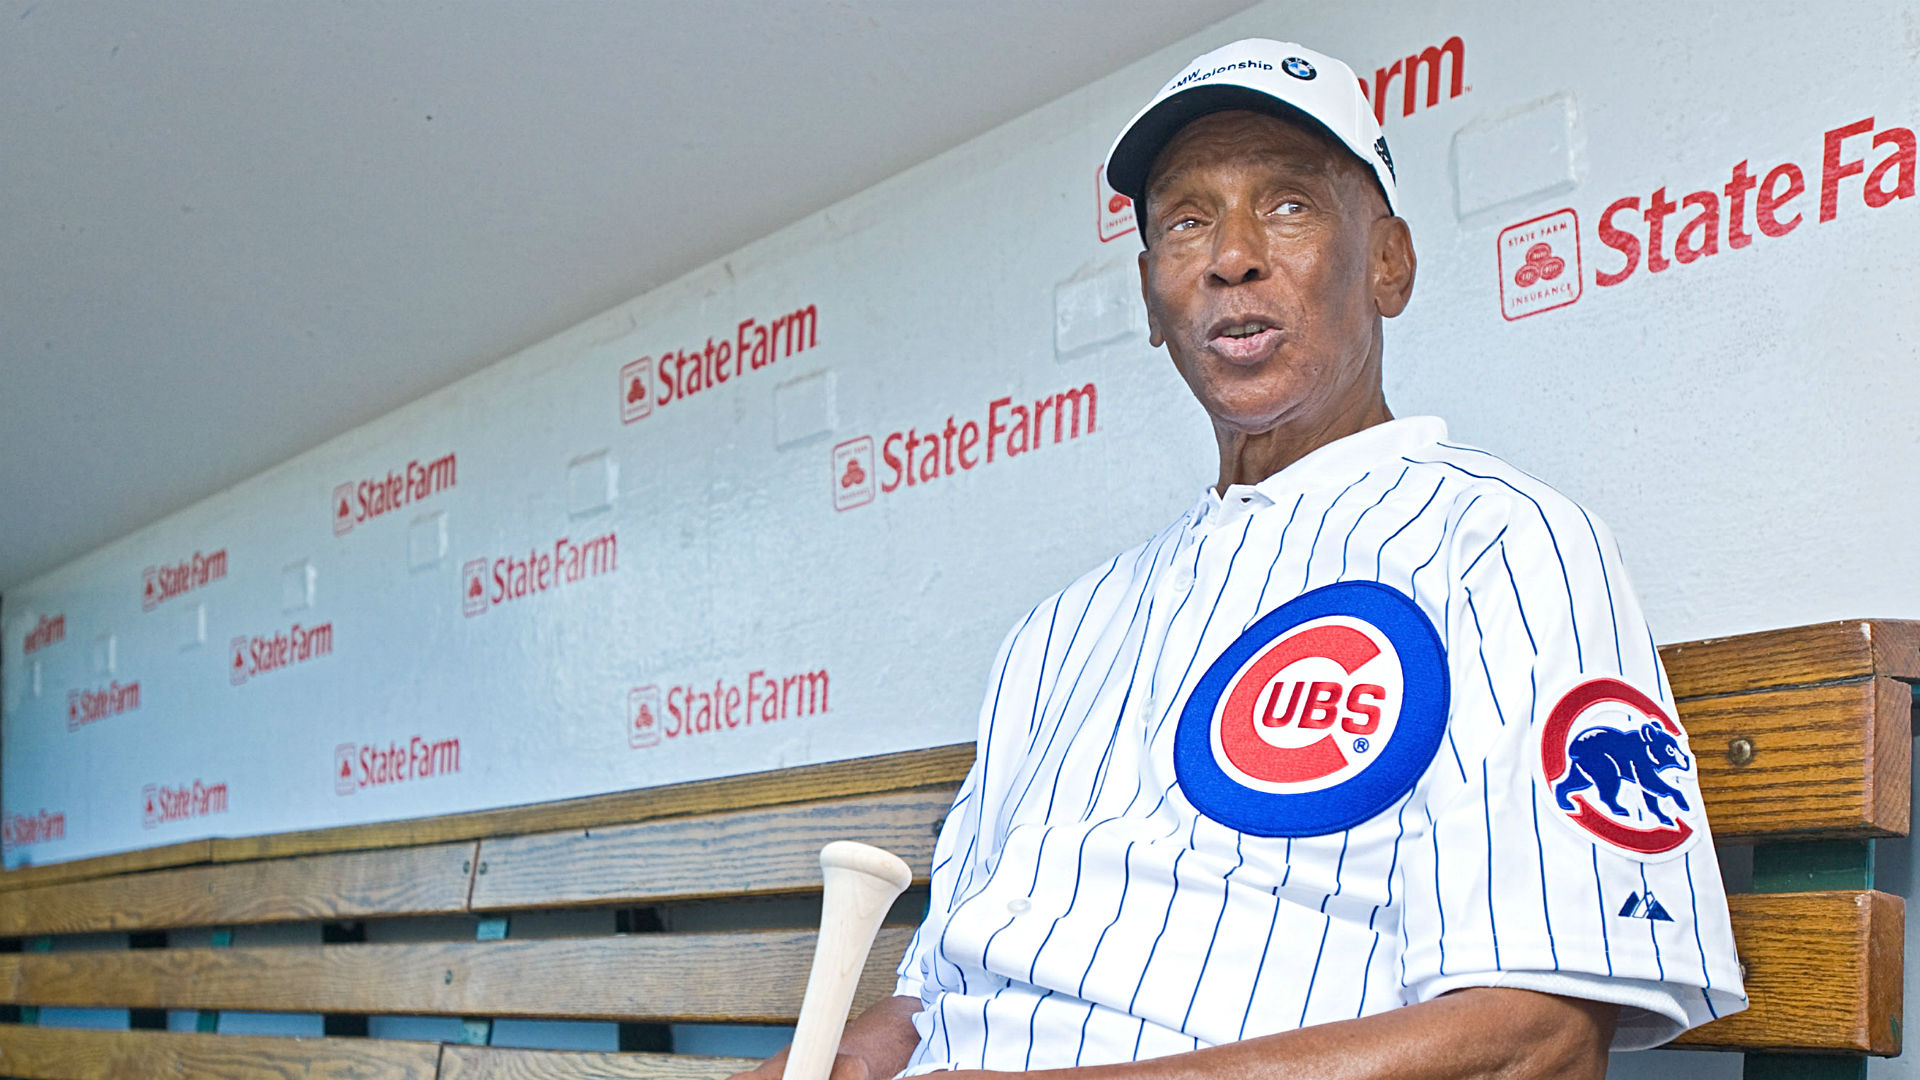 Estranged wife claims Ernie Banks had dementia when he signed will